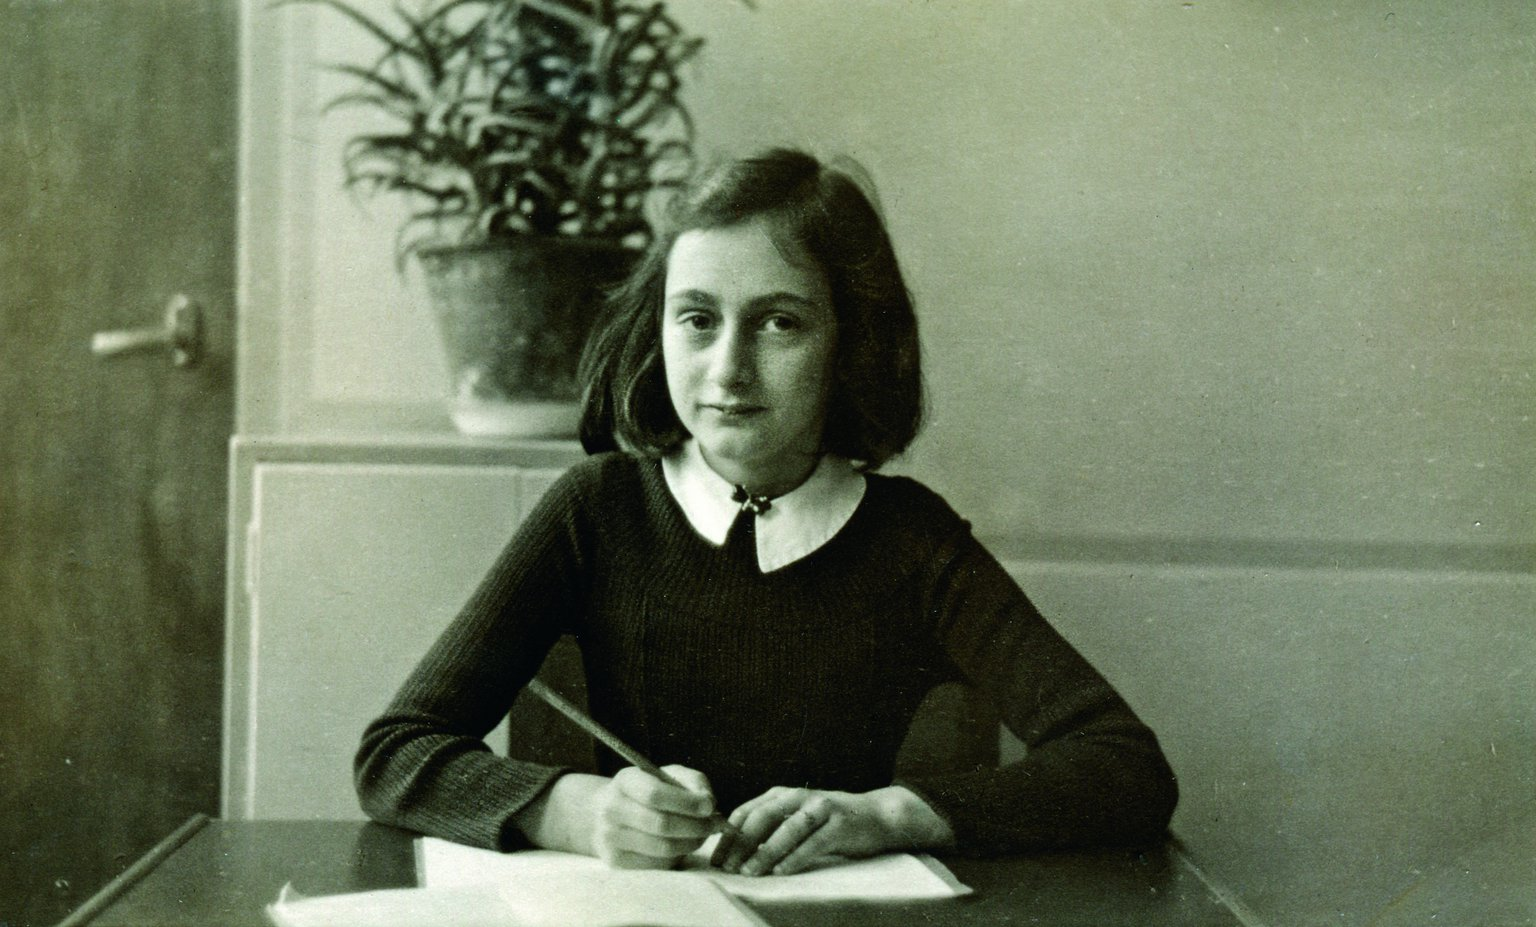 Anne Frank at her desk at the Montessori School in Amsterdam (winter 1940). In this picture, Anne is 11 years old and in sixth grade.